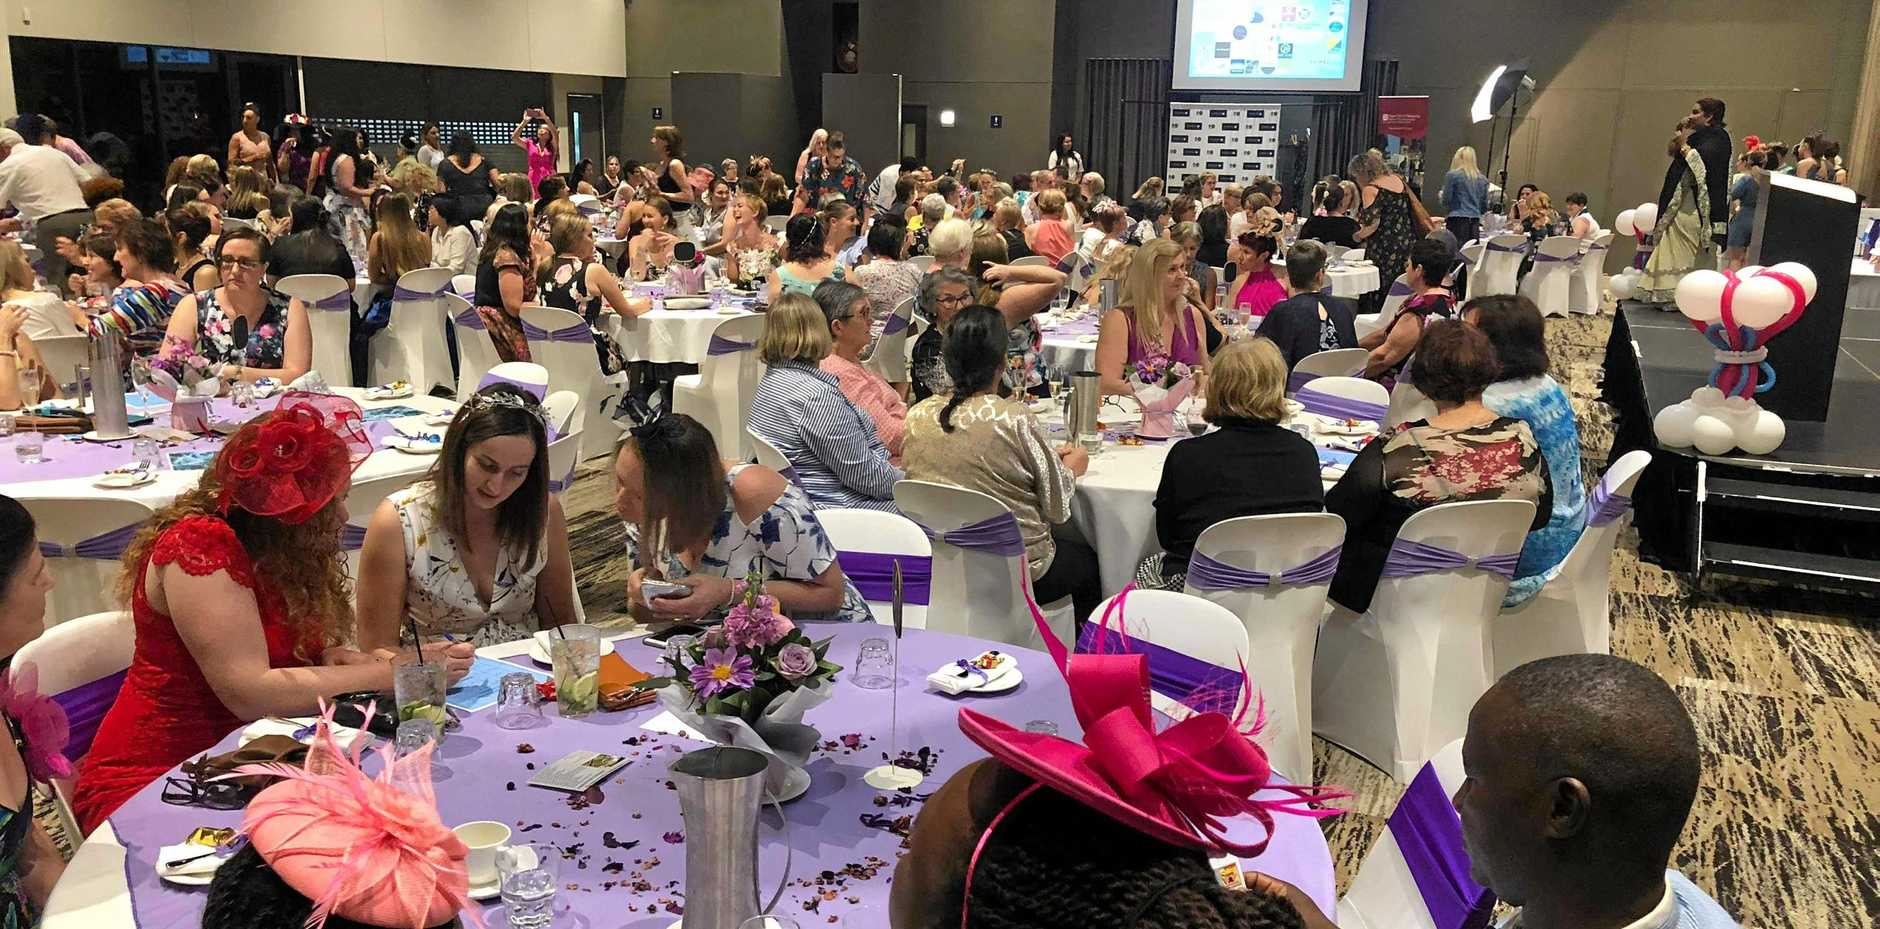 SECOND CHANCE: Restore More hosted a successful fundraiser to help Gladstone women and their cancer recovery on Saturday.